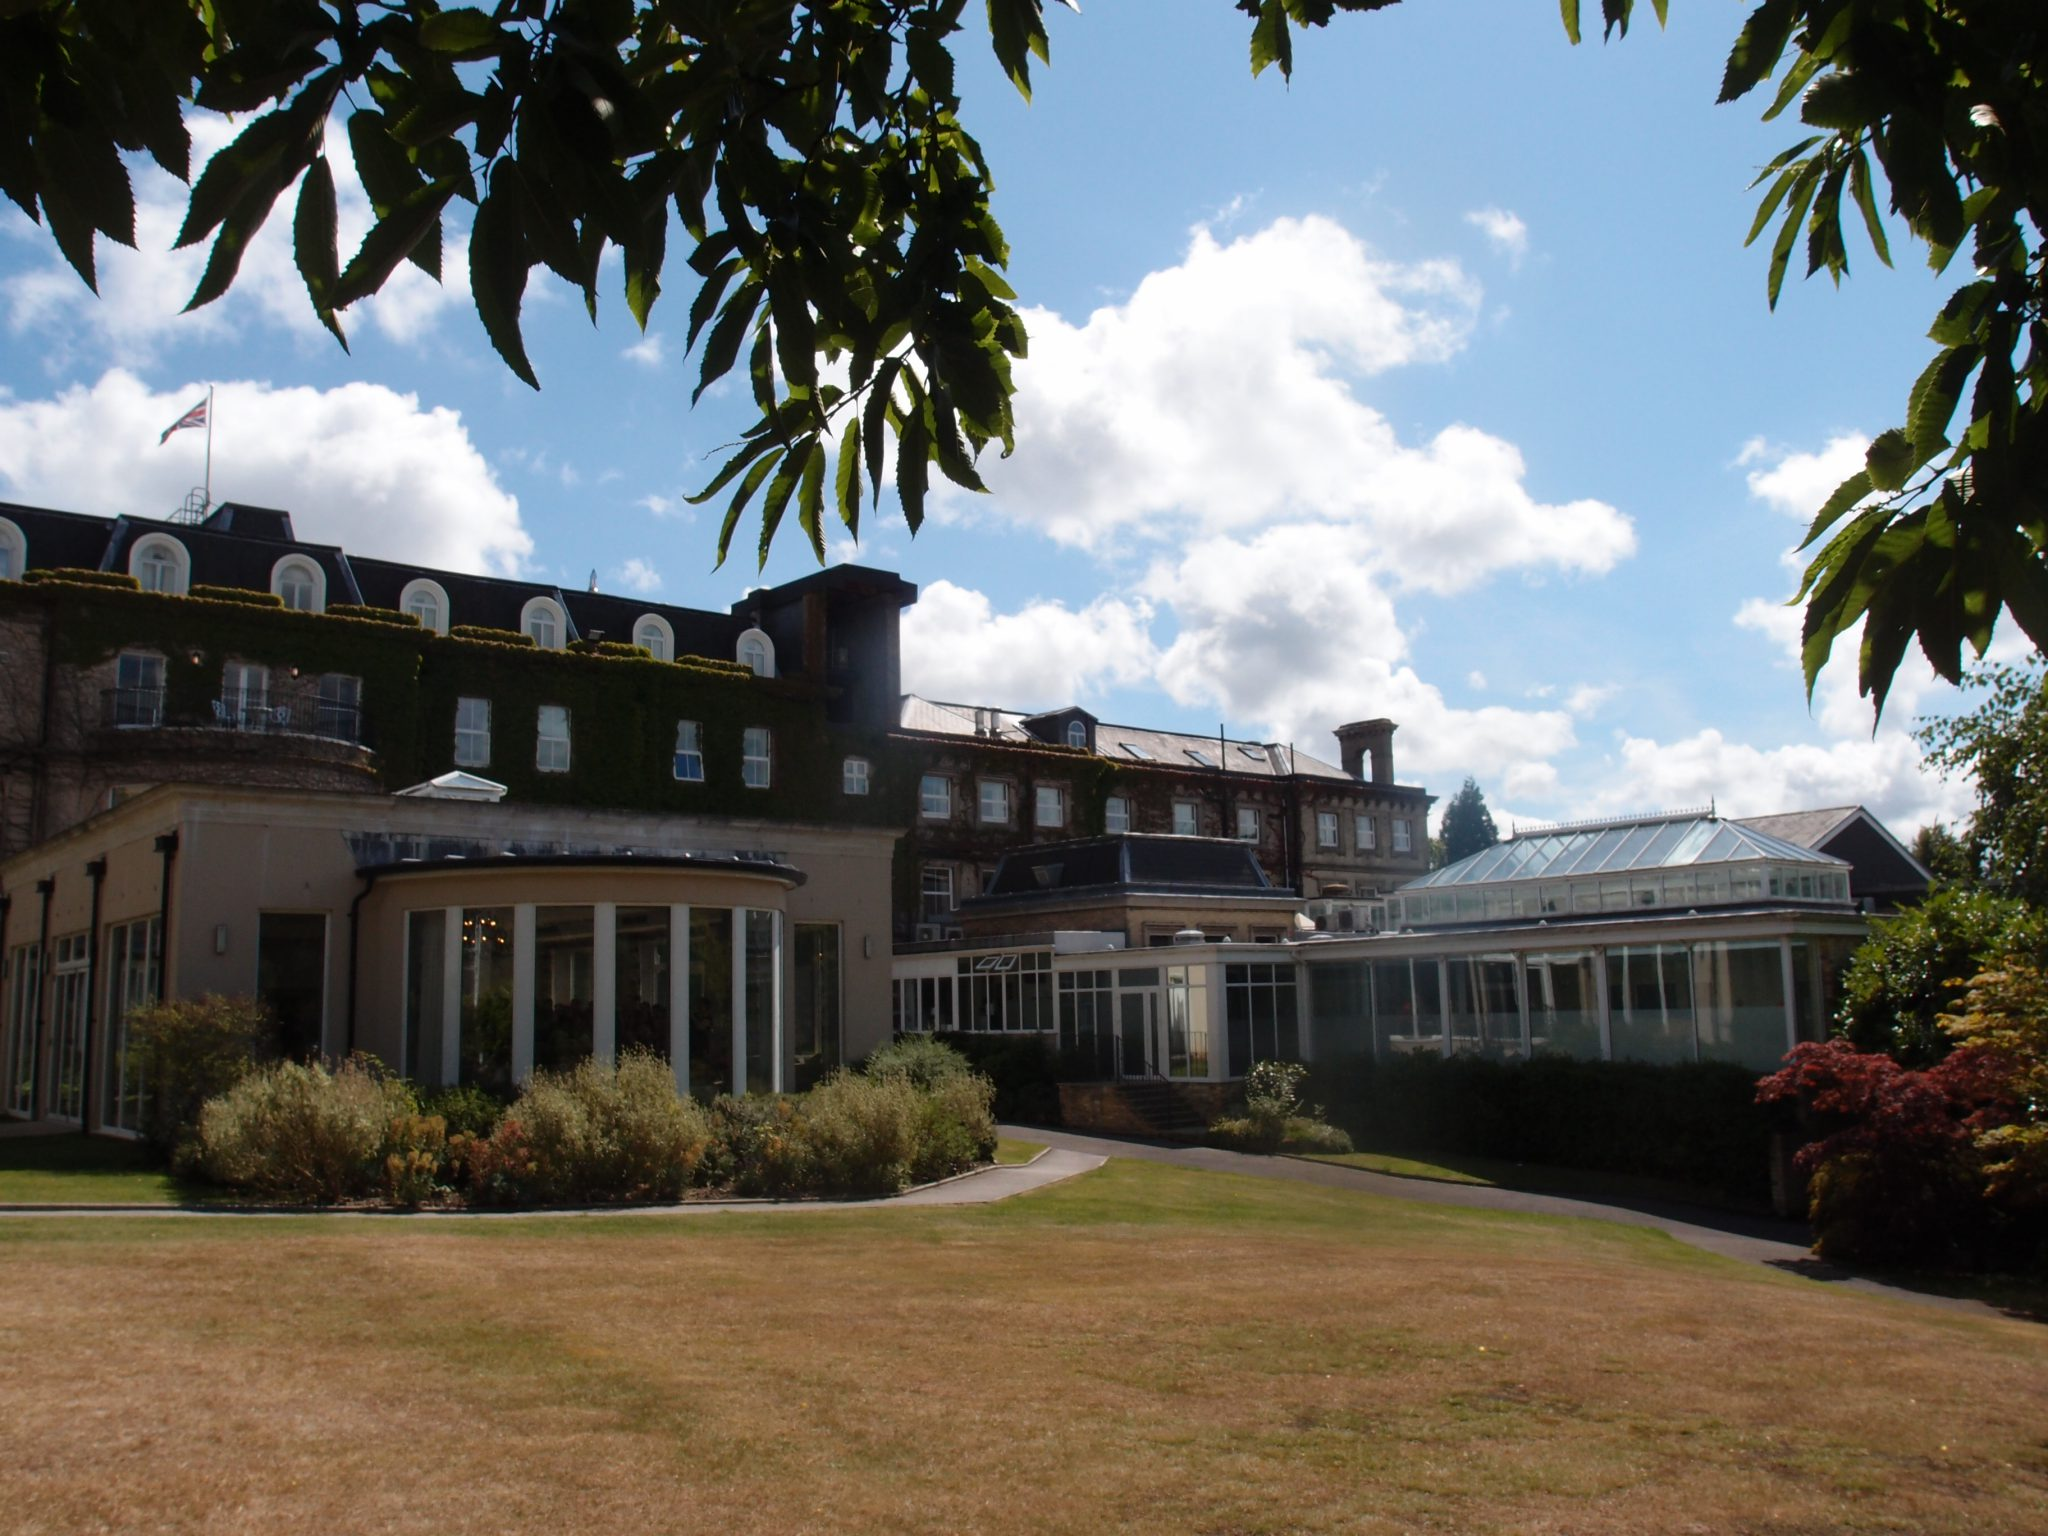 The rear elevation of The Spa Hotel, which looks out over many acres of private parkland.